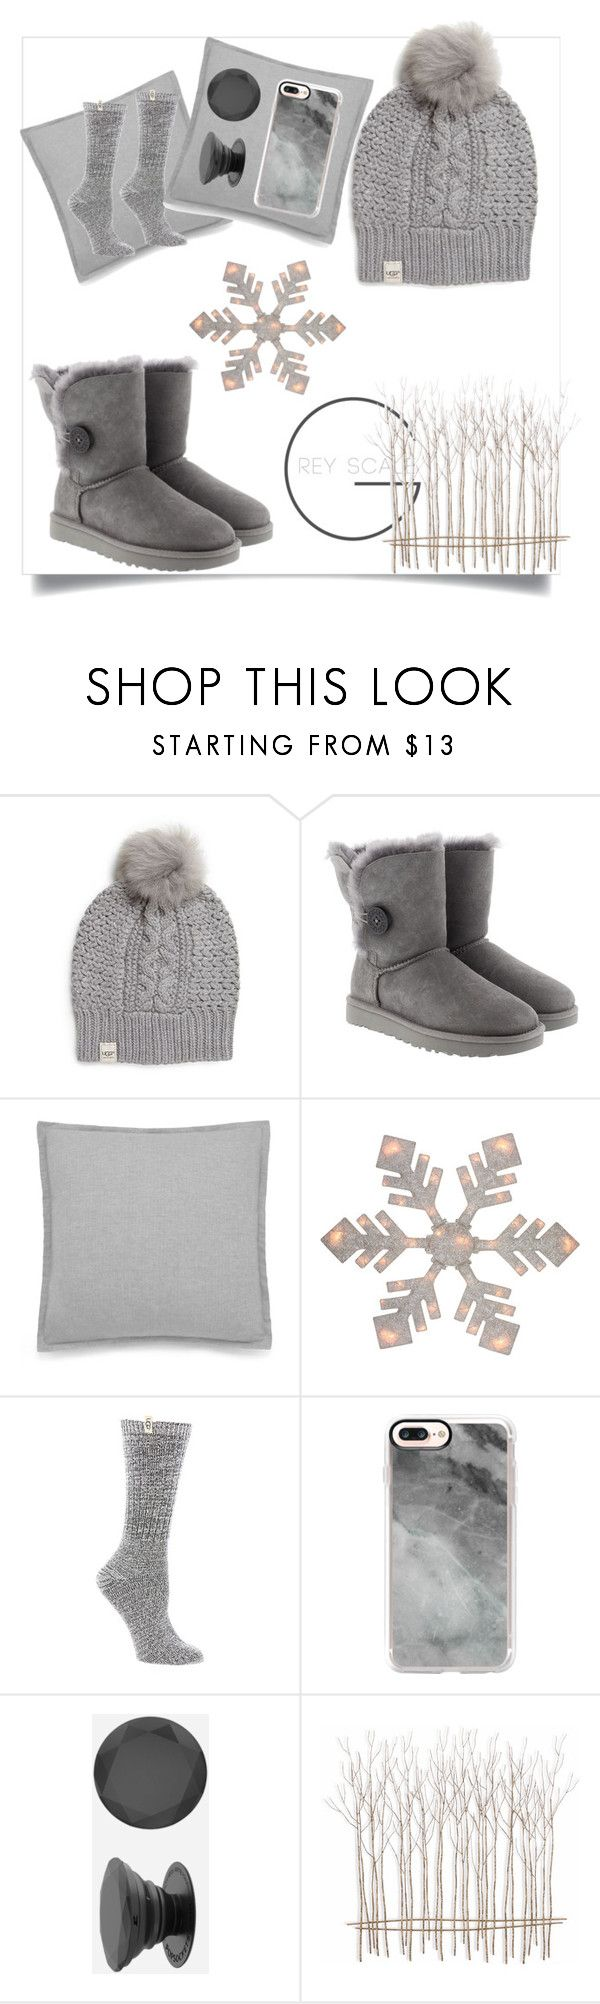 """Grey scale"" by mary2003 ❤ liked on Polyvore featuring UGG Australia, UGG, Northlight Homestore, Casetify, PopSockets and Fox"